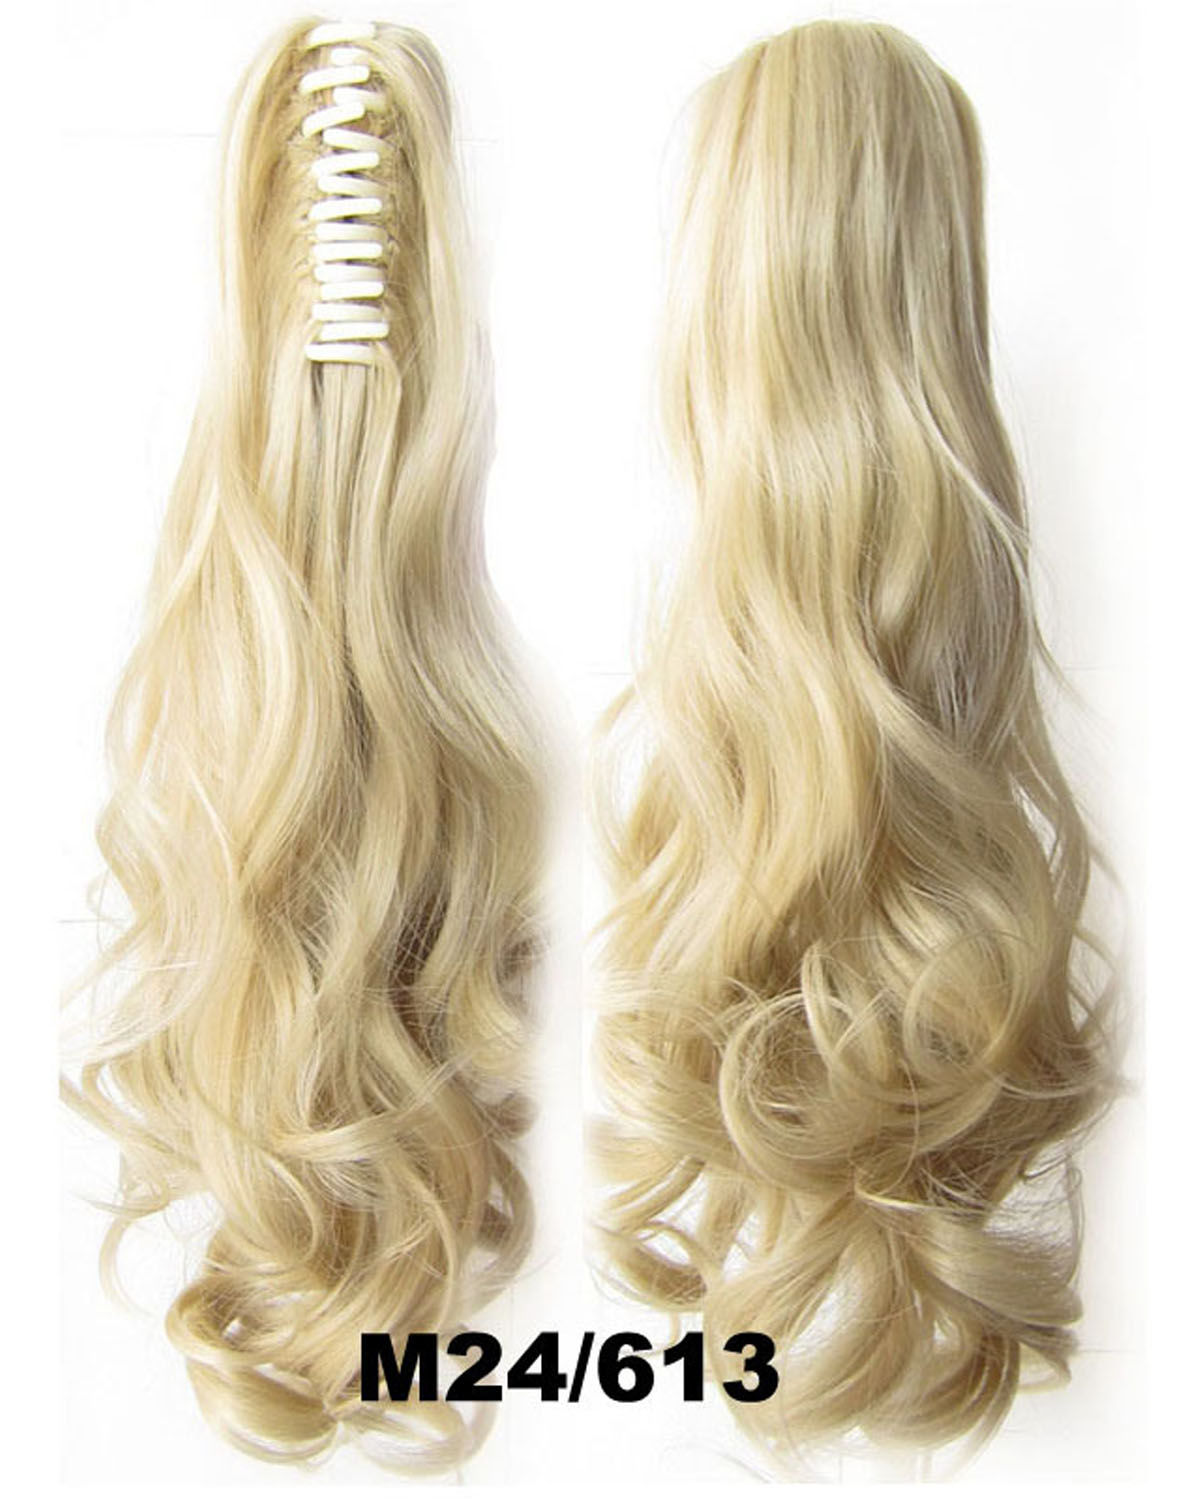 22 Inch Lady Body Wave Amazing Curly and Long Claw Chip Synthetic Hair Ponytail  M24/613